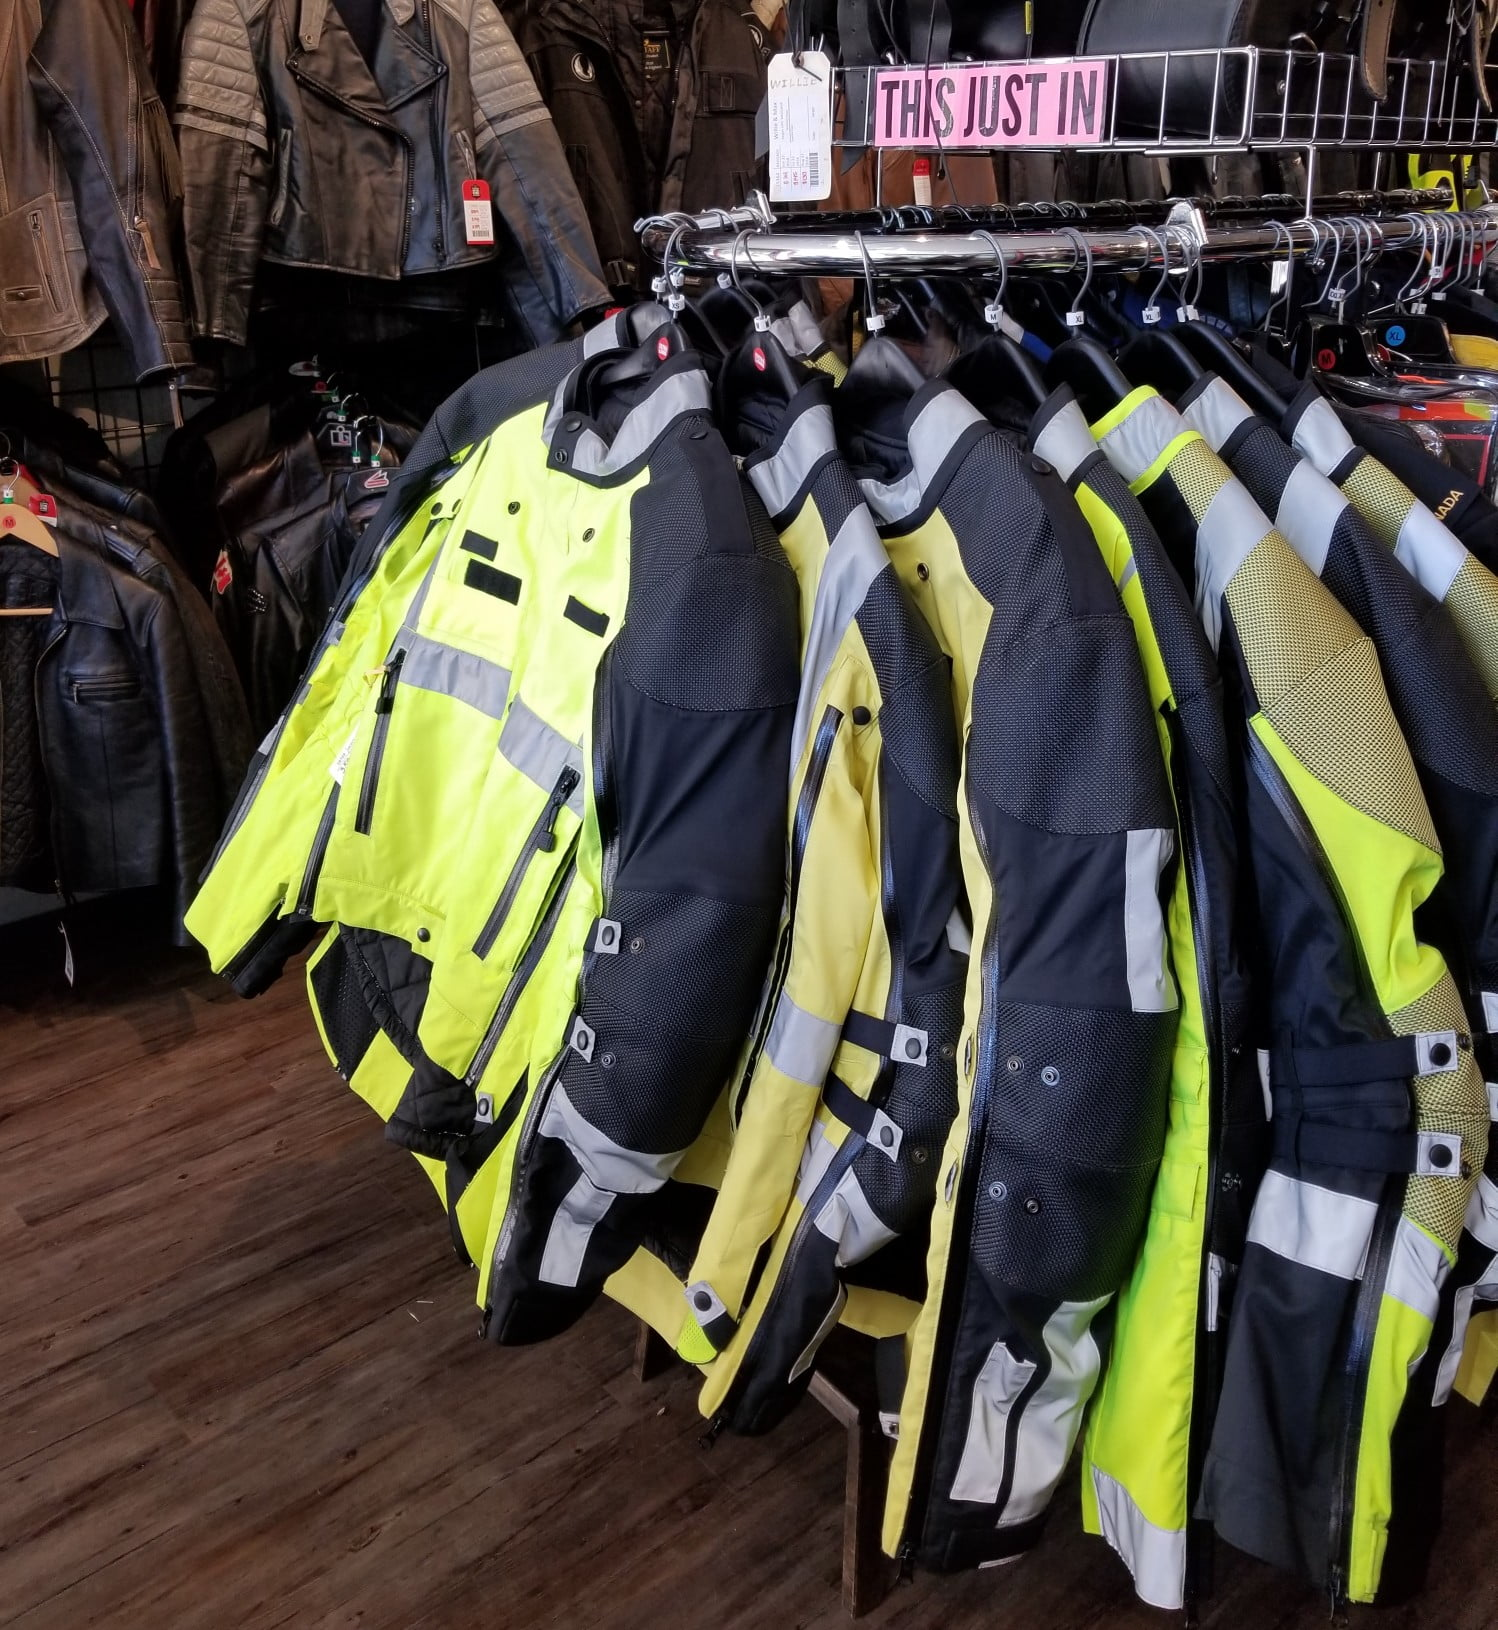 Textile waterproof police-style jackets